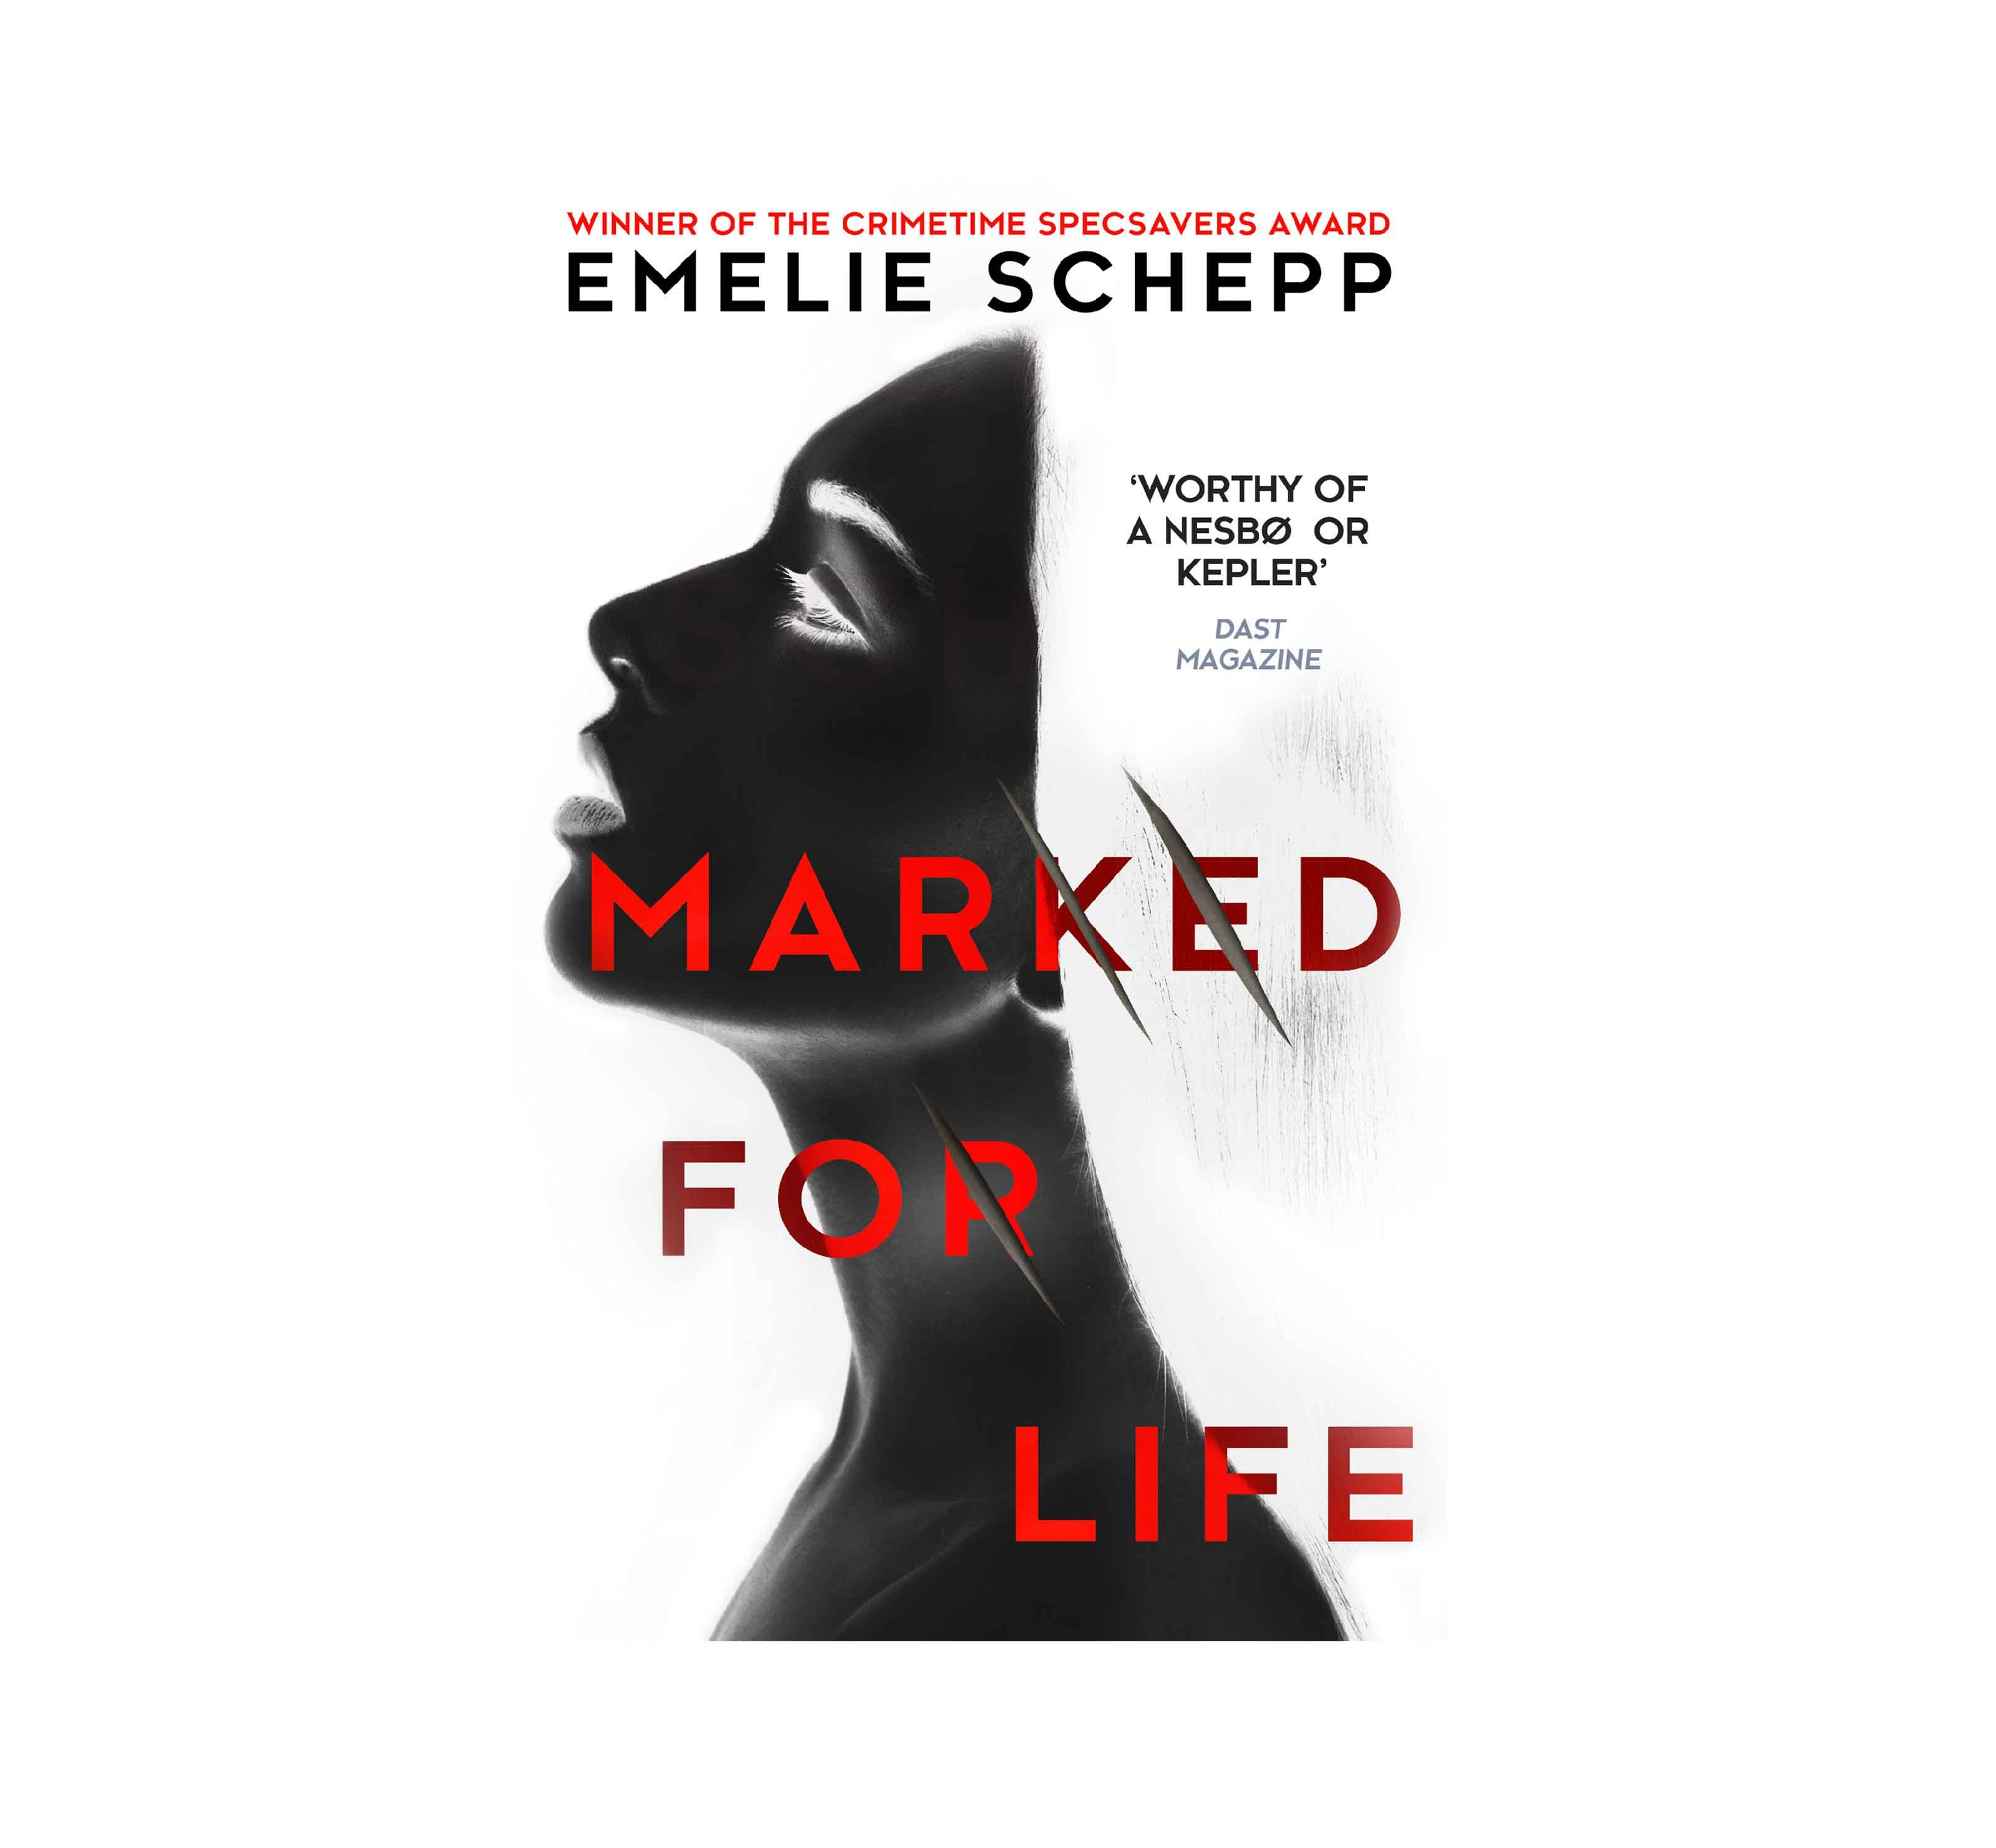 Marked for life book